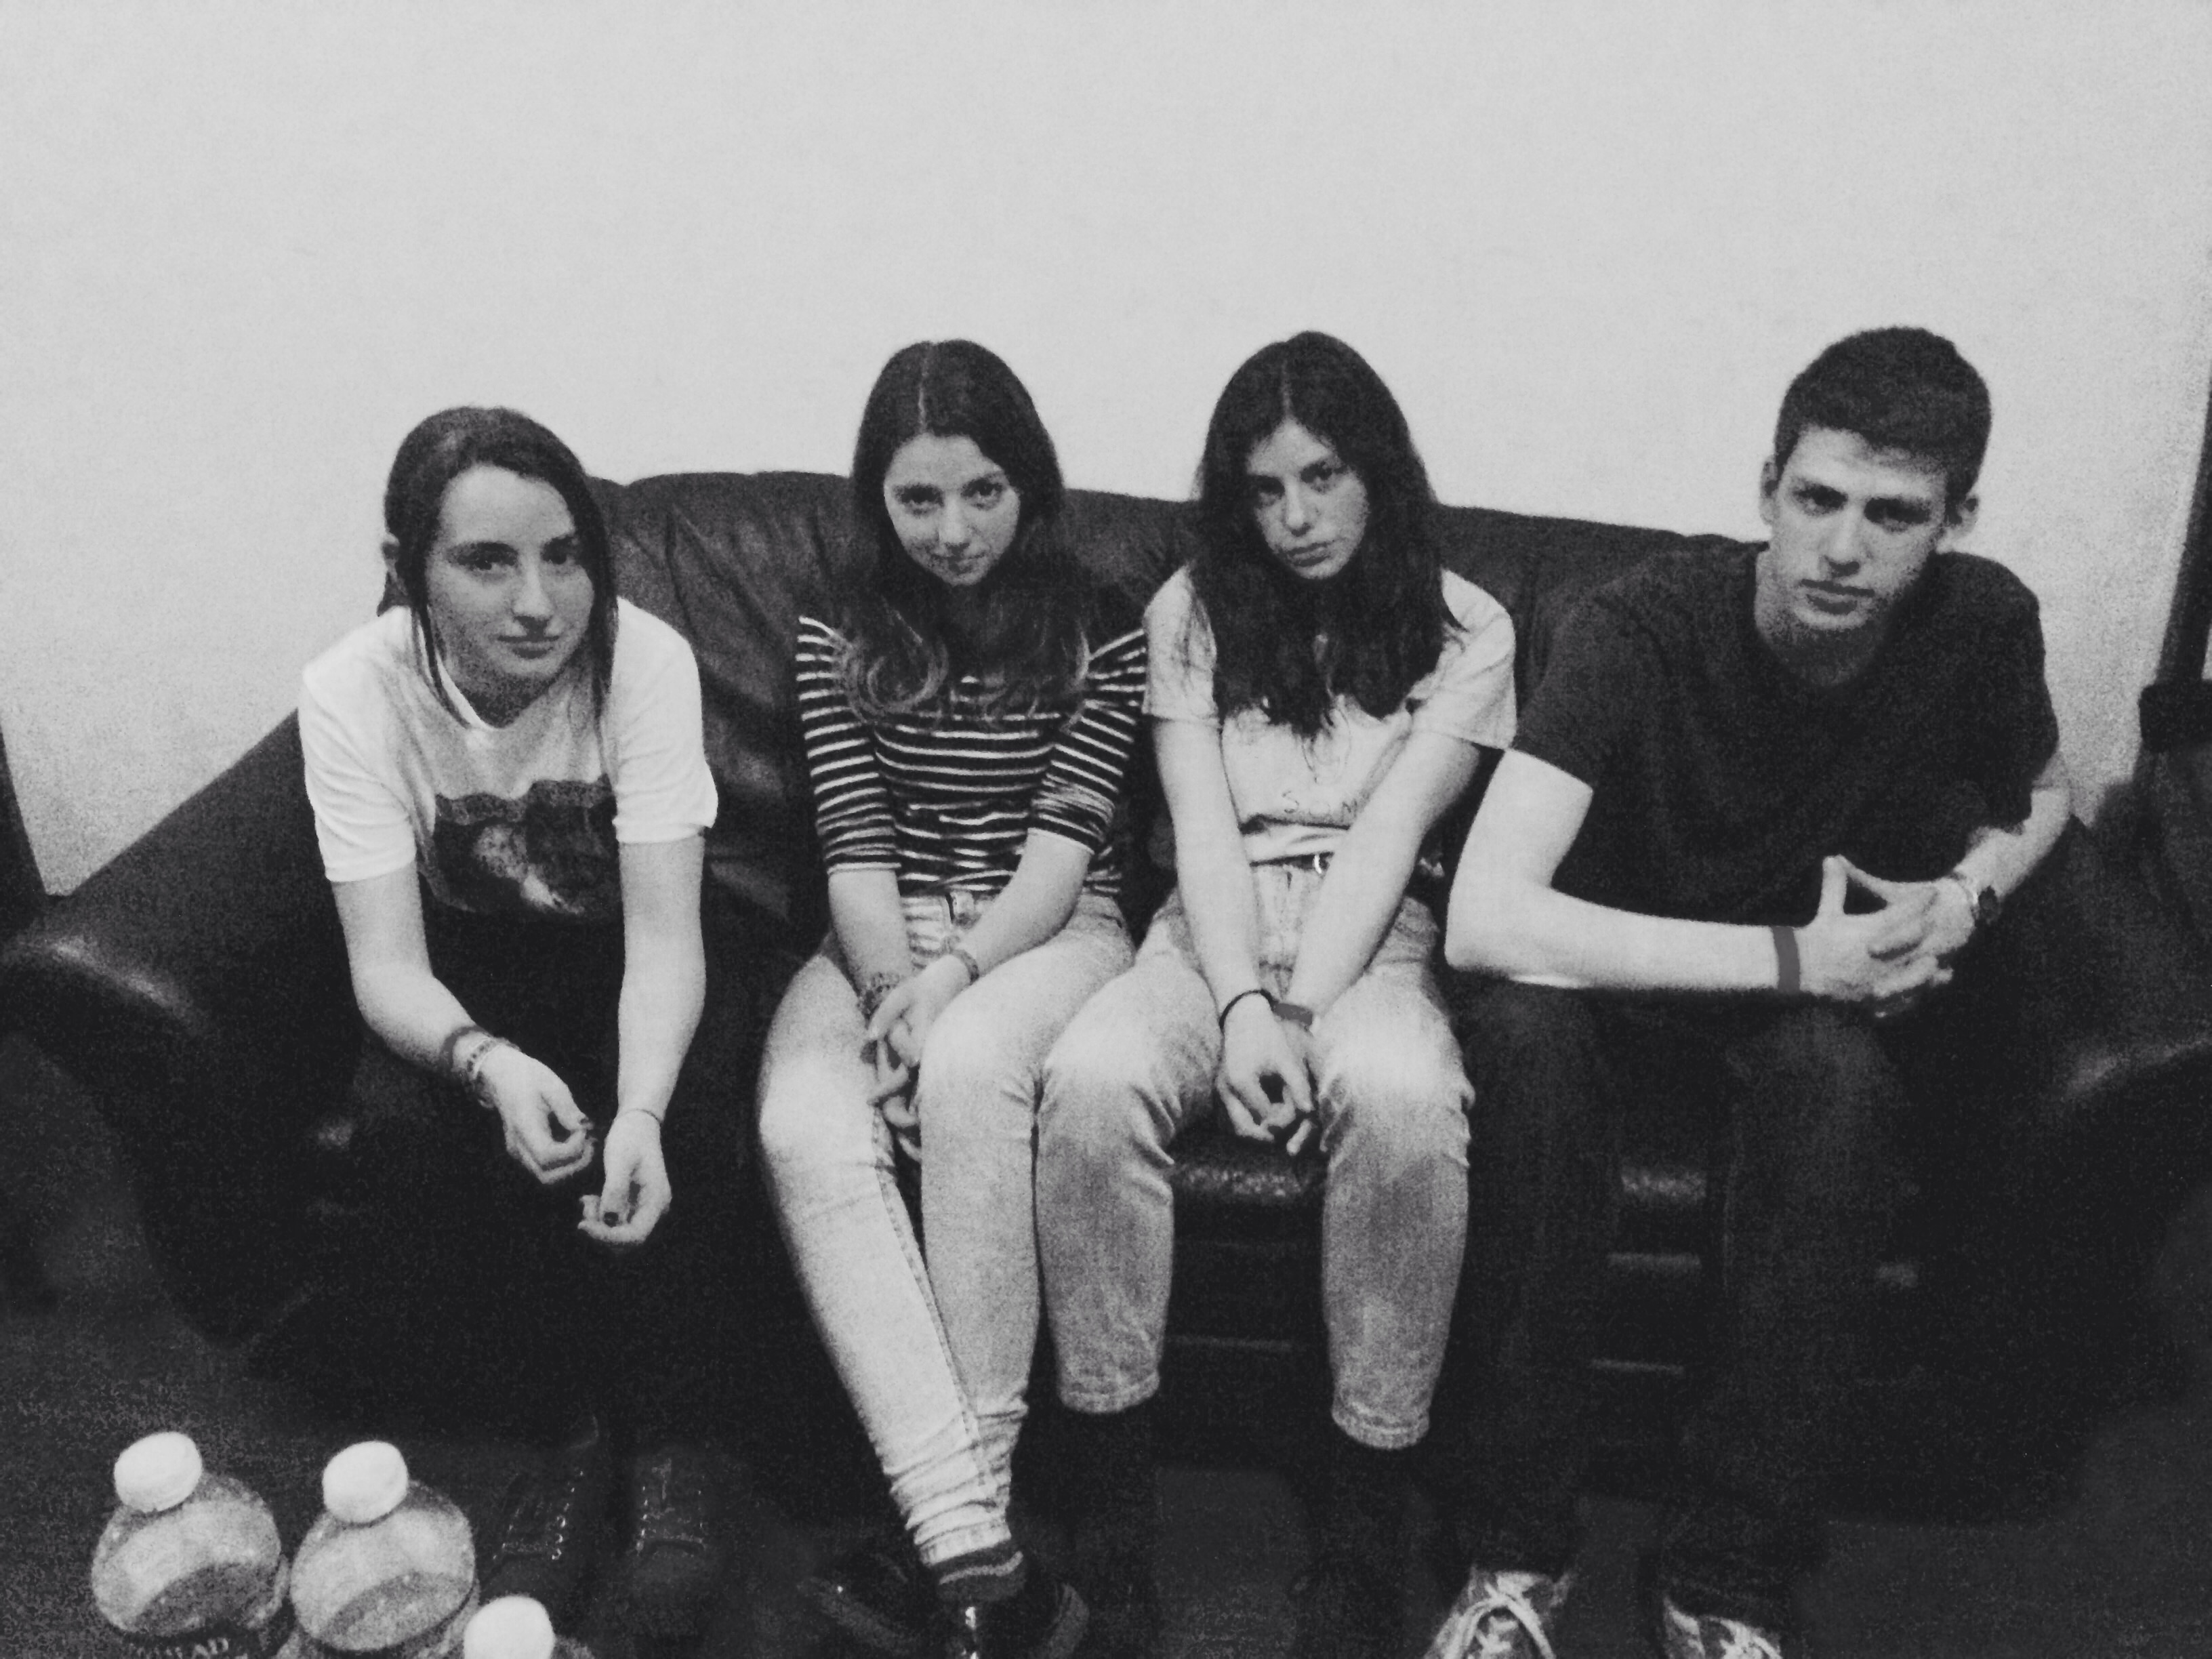 Our interview with Mourn, by Britt Bachmann. The Catalonian band's album 'Ha Ha He' is out on Captured Tracks.